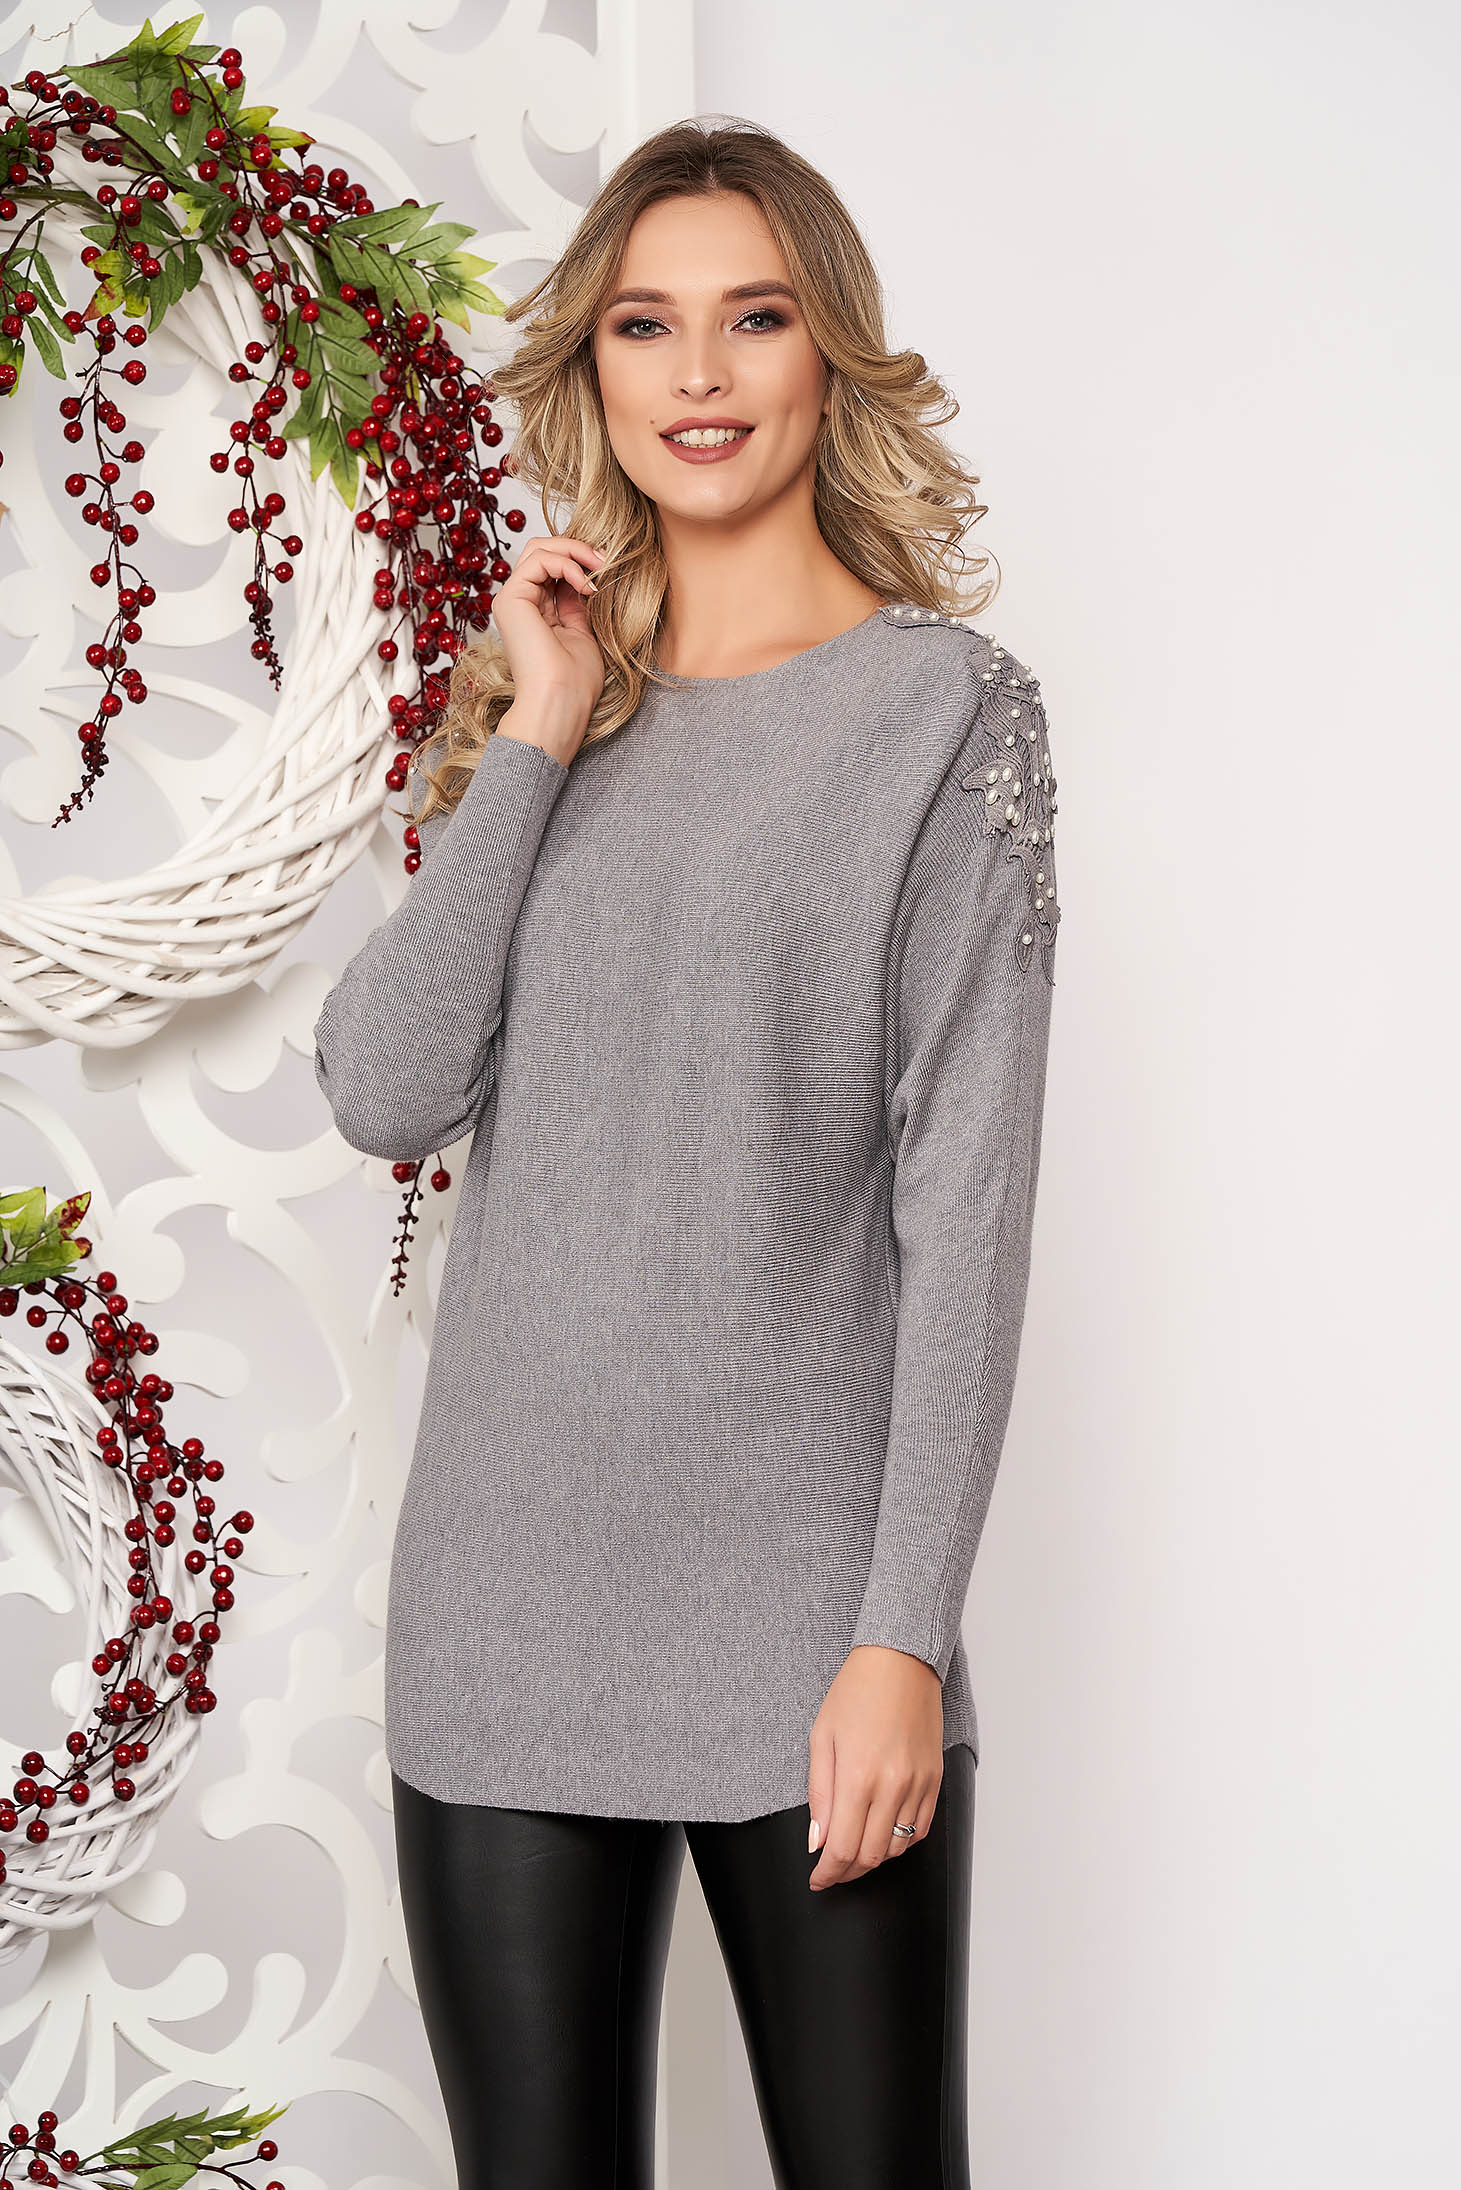 Grey sweater long sleeved with lace details knitted fabric long sleeve flared short cut